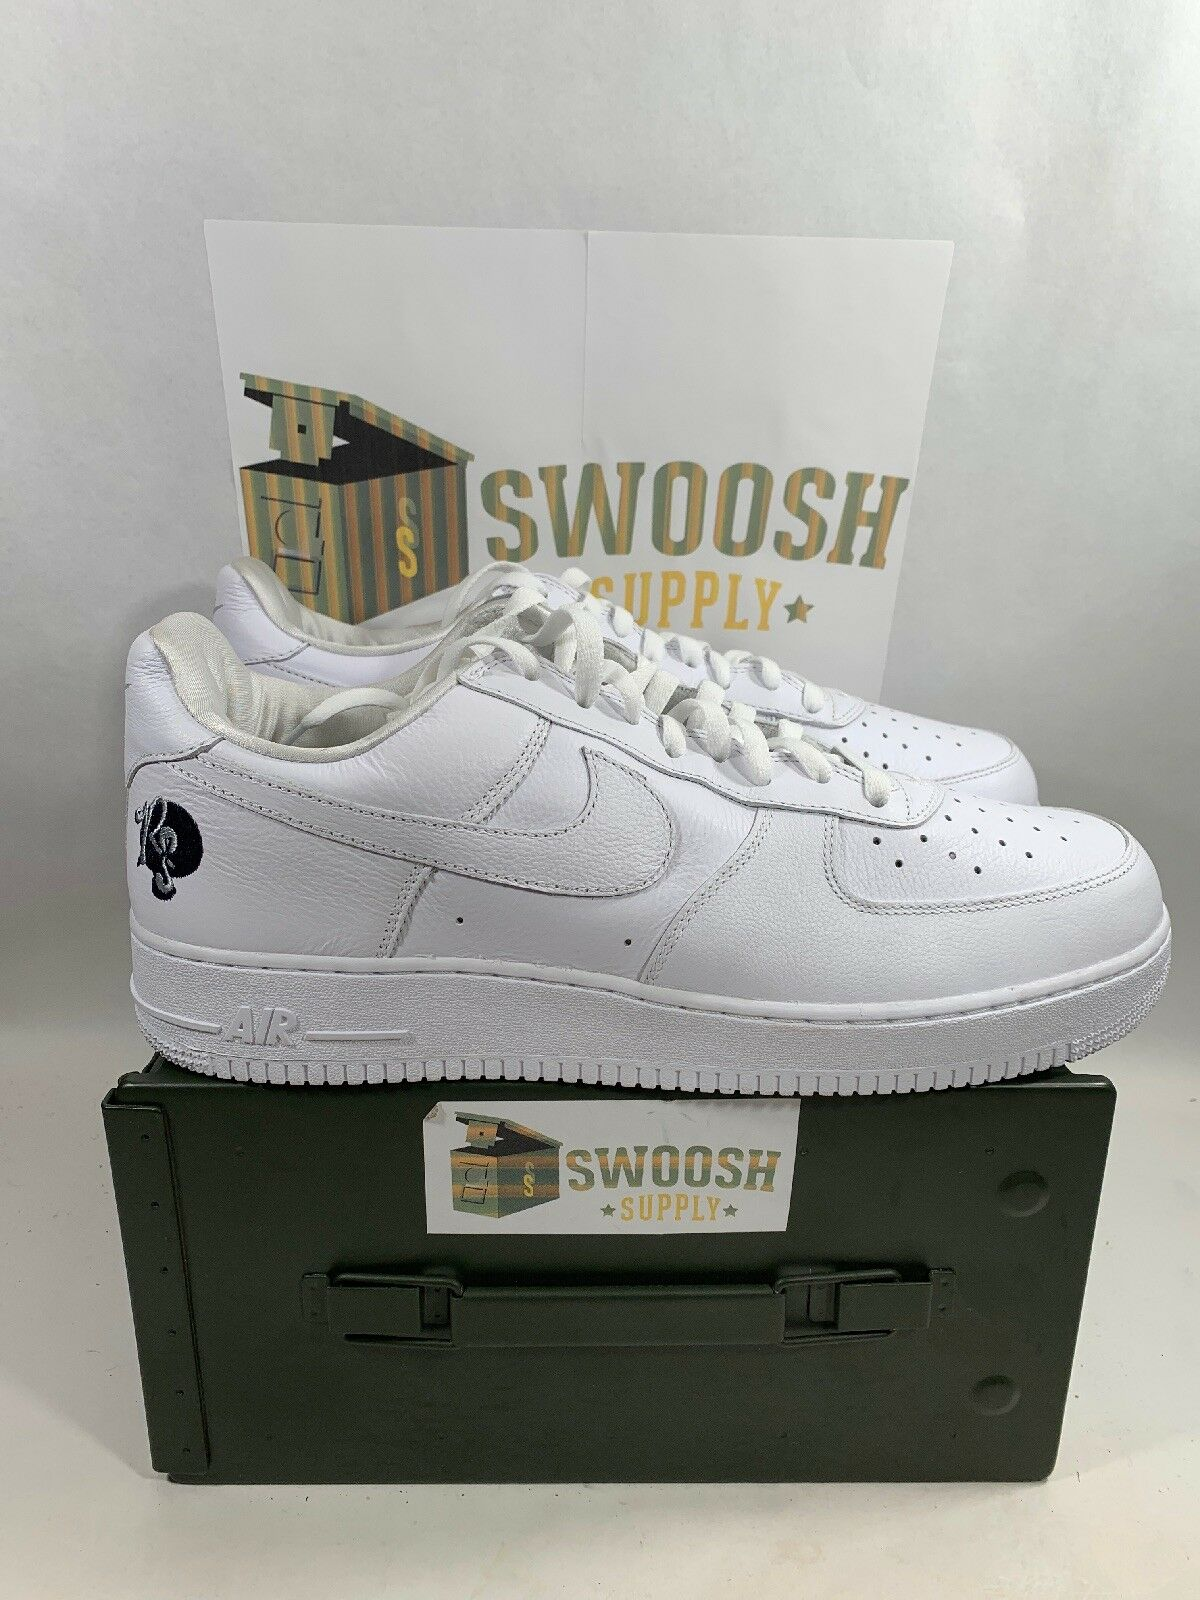 Nike Air Force 1 '07 Rocafella Mens AO1070-101 White Leather Low shoes Size 14